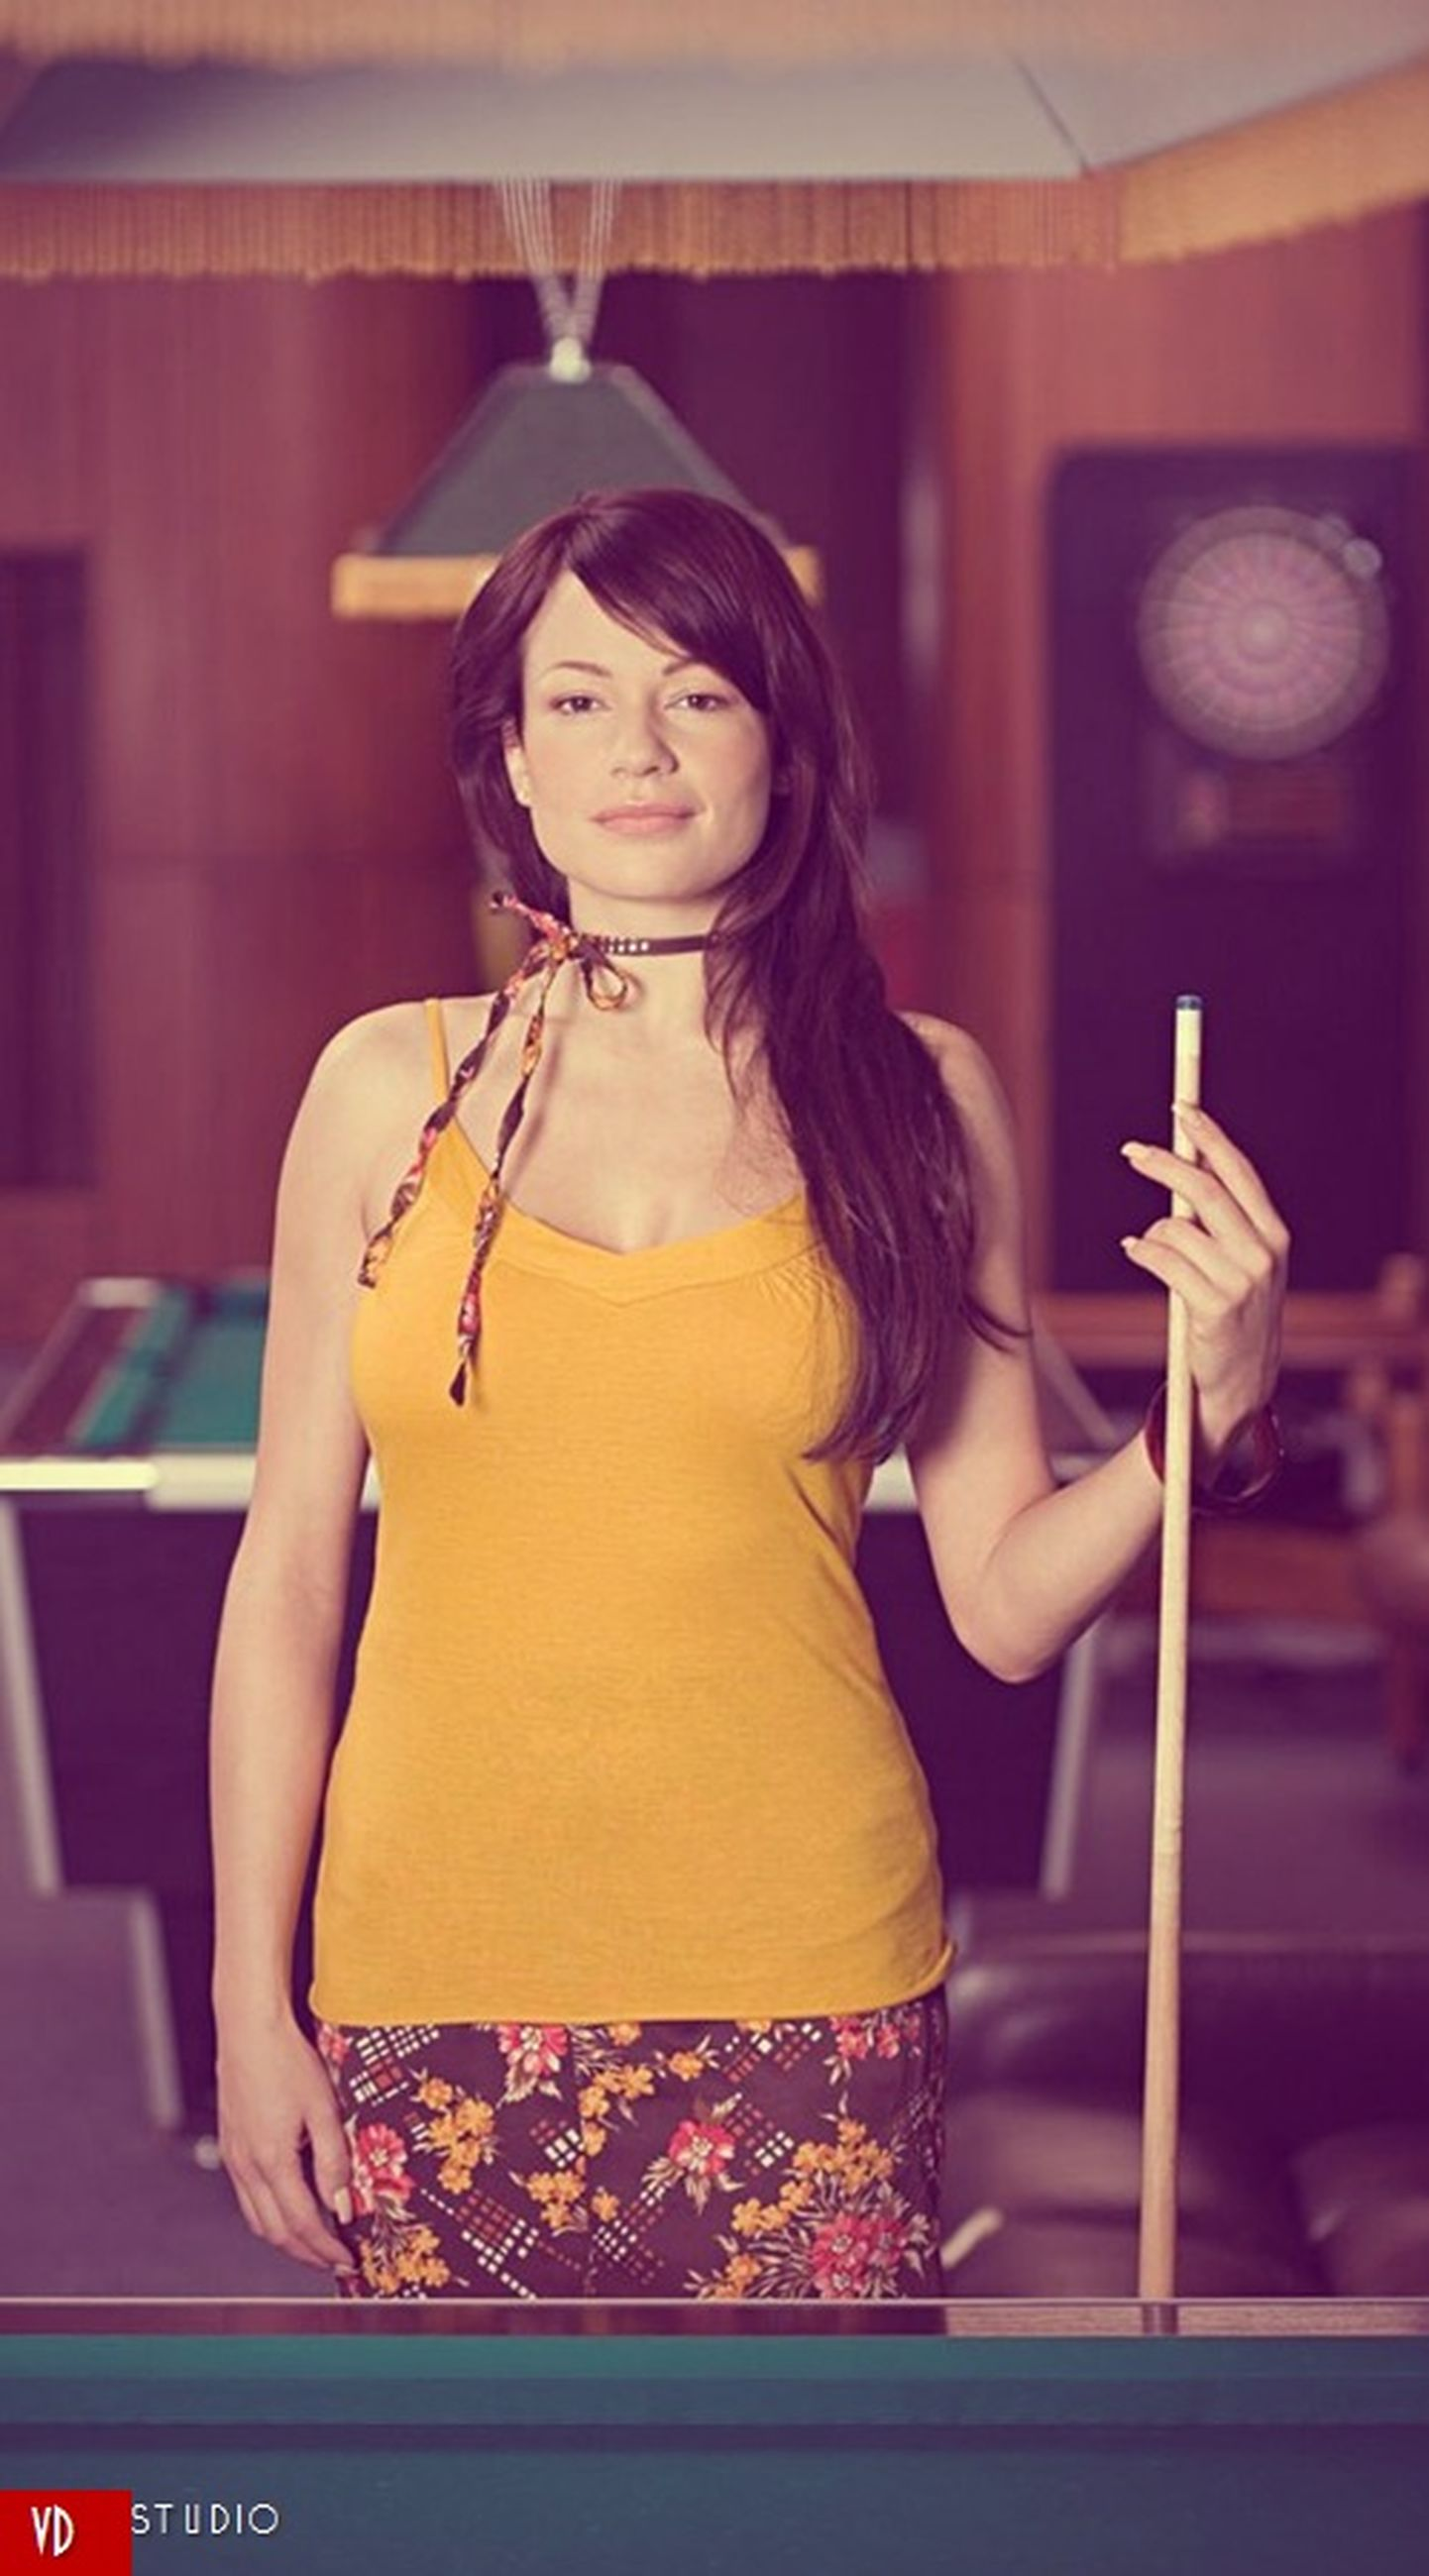 indoors, young adult, person, lifestyles, casual clothing, front view, leisure activity, sitting, young women, holding, three quarter length, human representation, art, waist up, looking at camera, standing, smiling